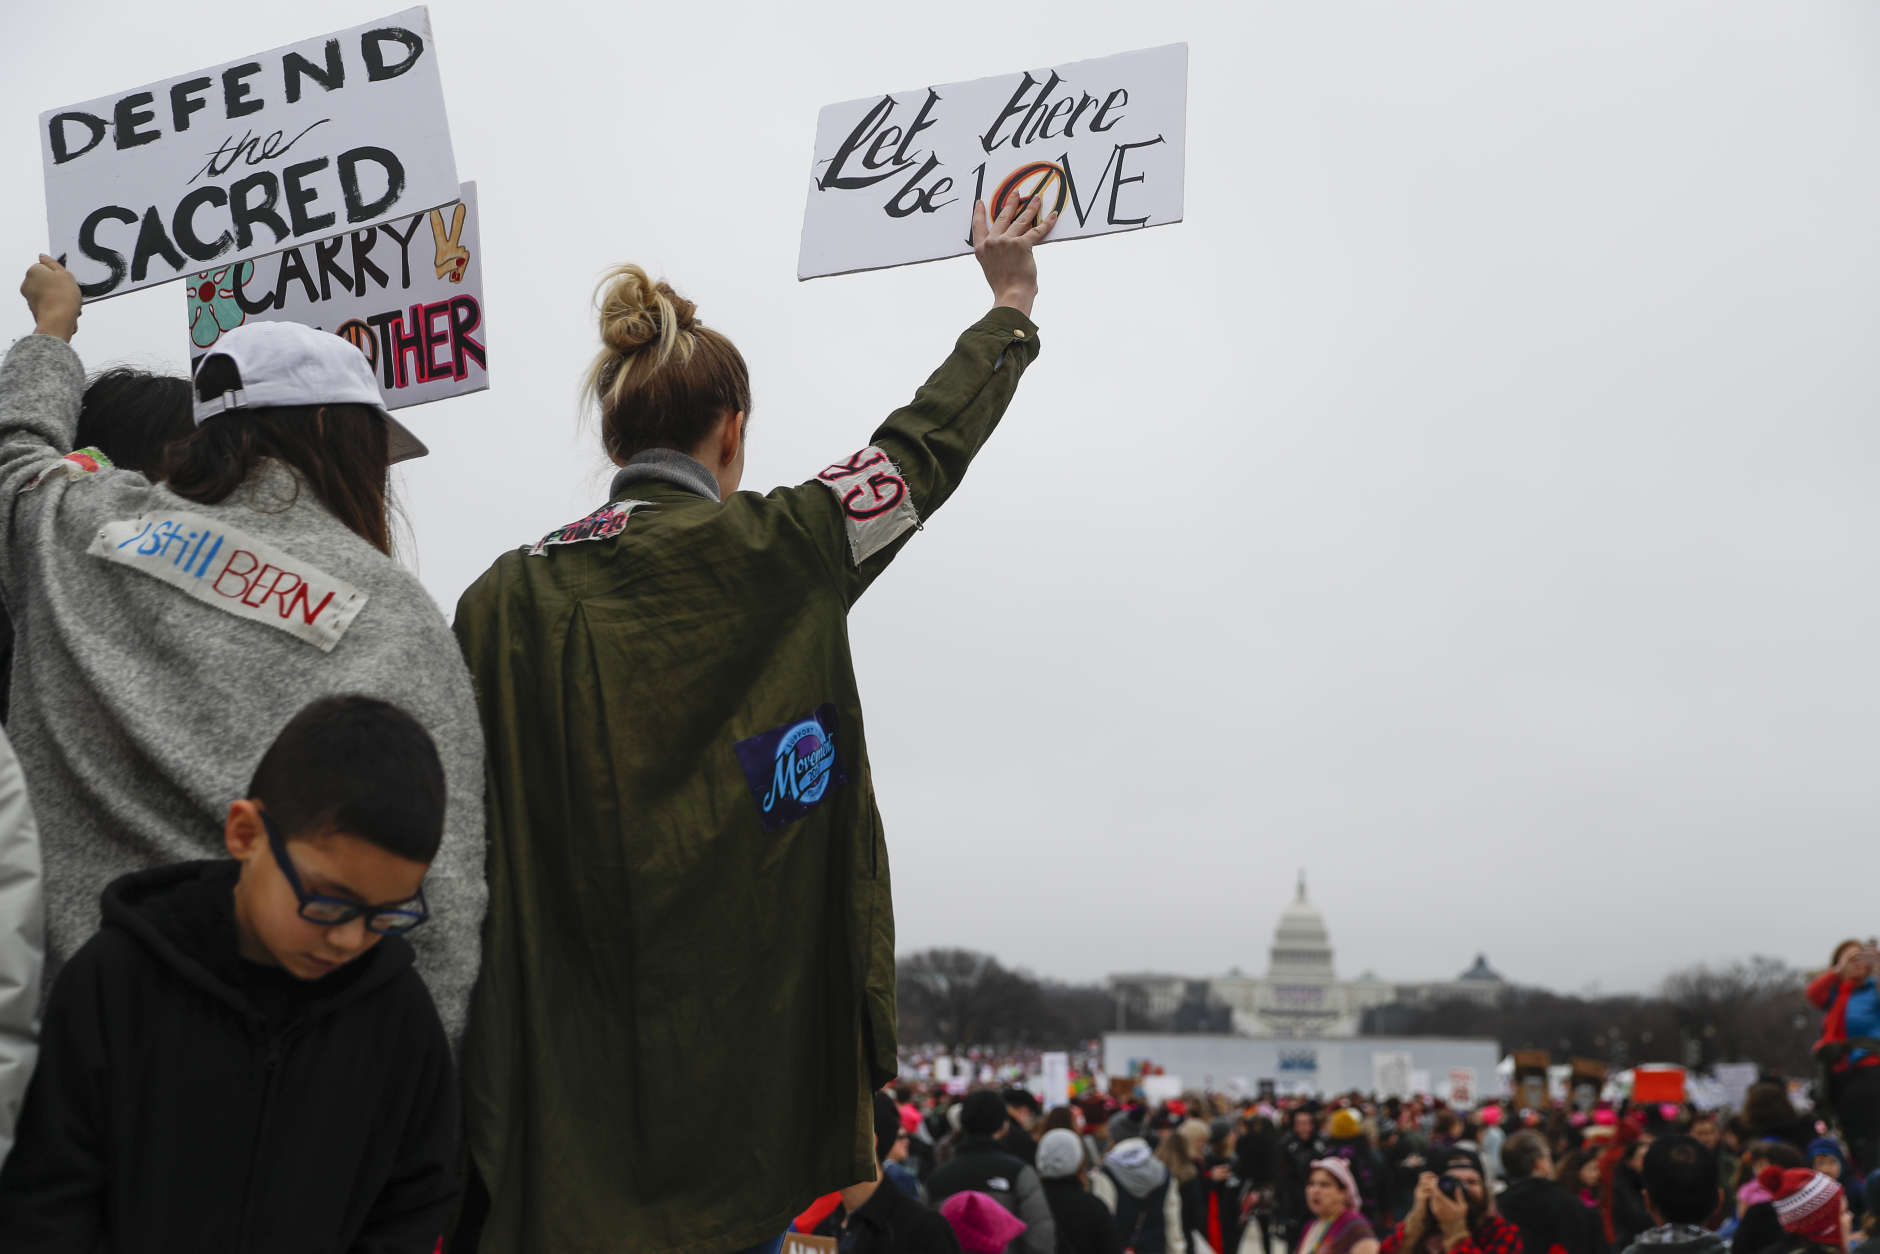 Protesters gather on the National Mall for the Women's March on Washington during the first full day of Donald Trump's presidency, Saturday, Jan. 21, 2017 in Washington.  (AP Photo/John Minchillo)